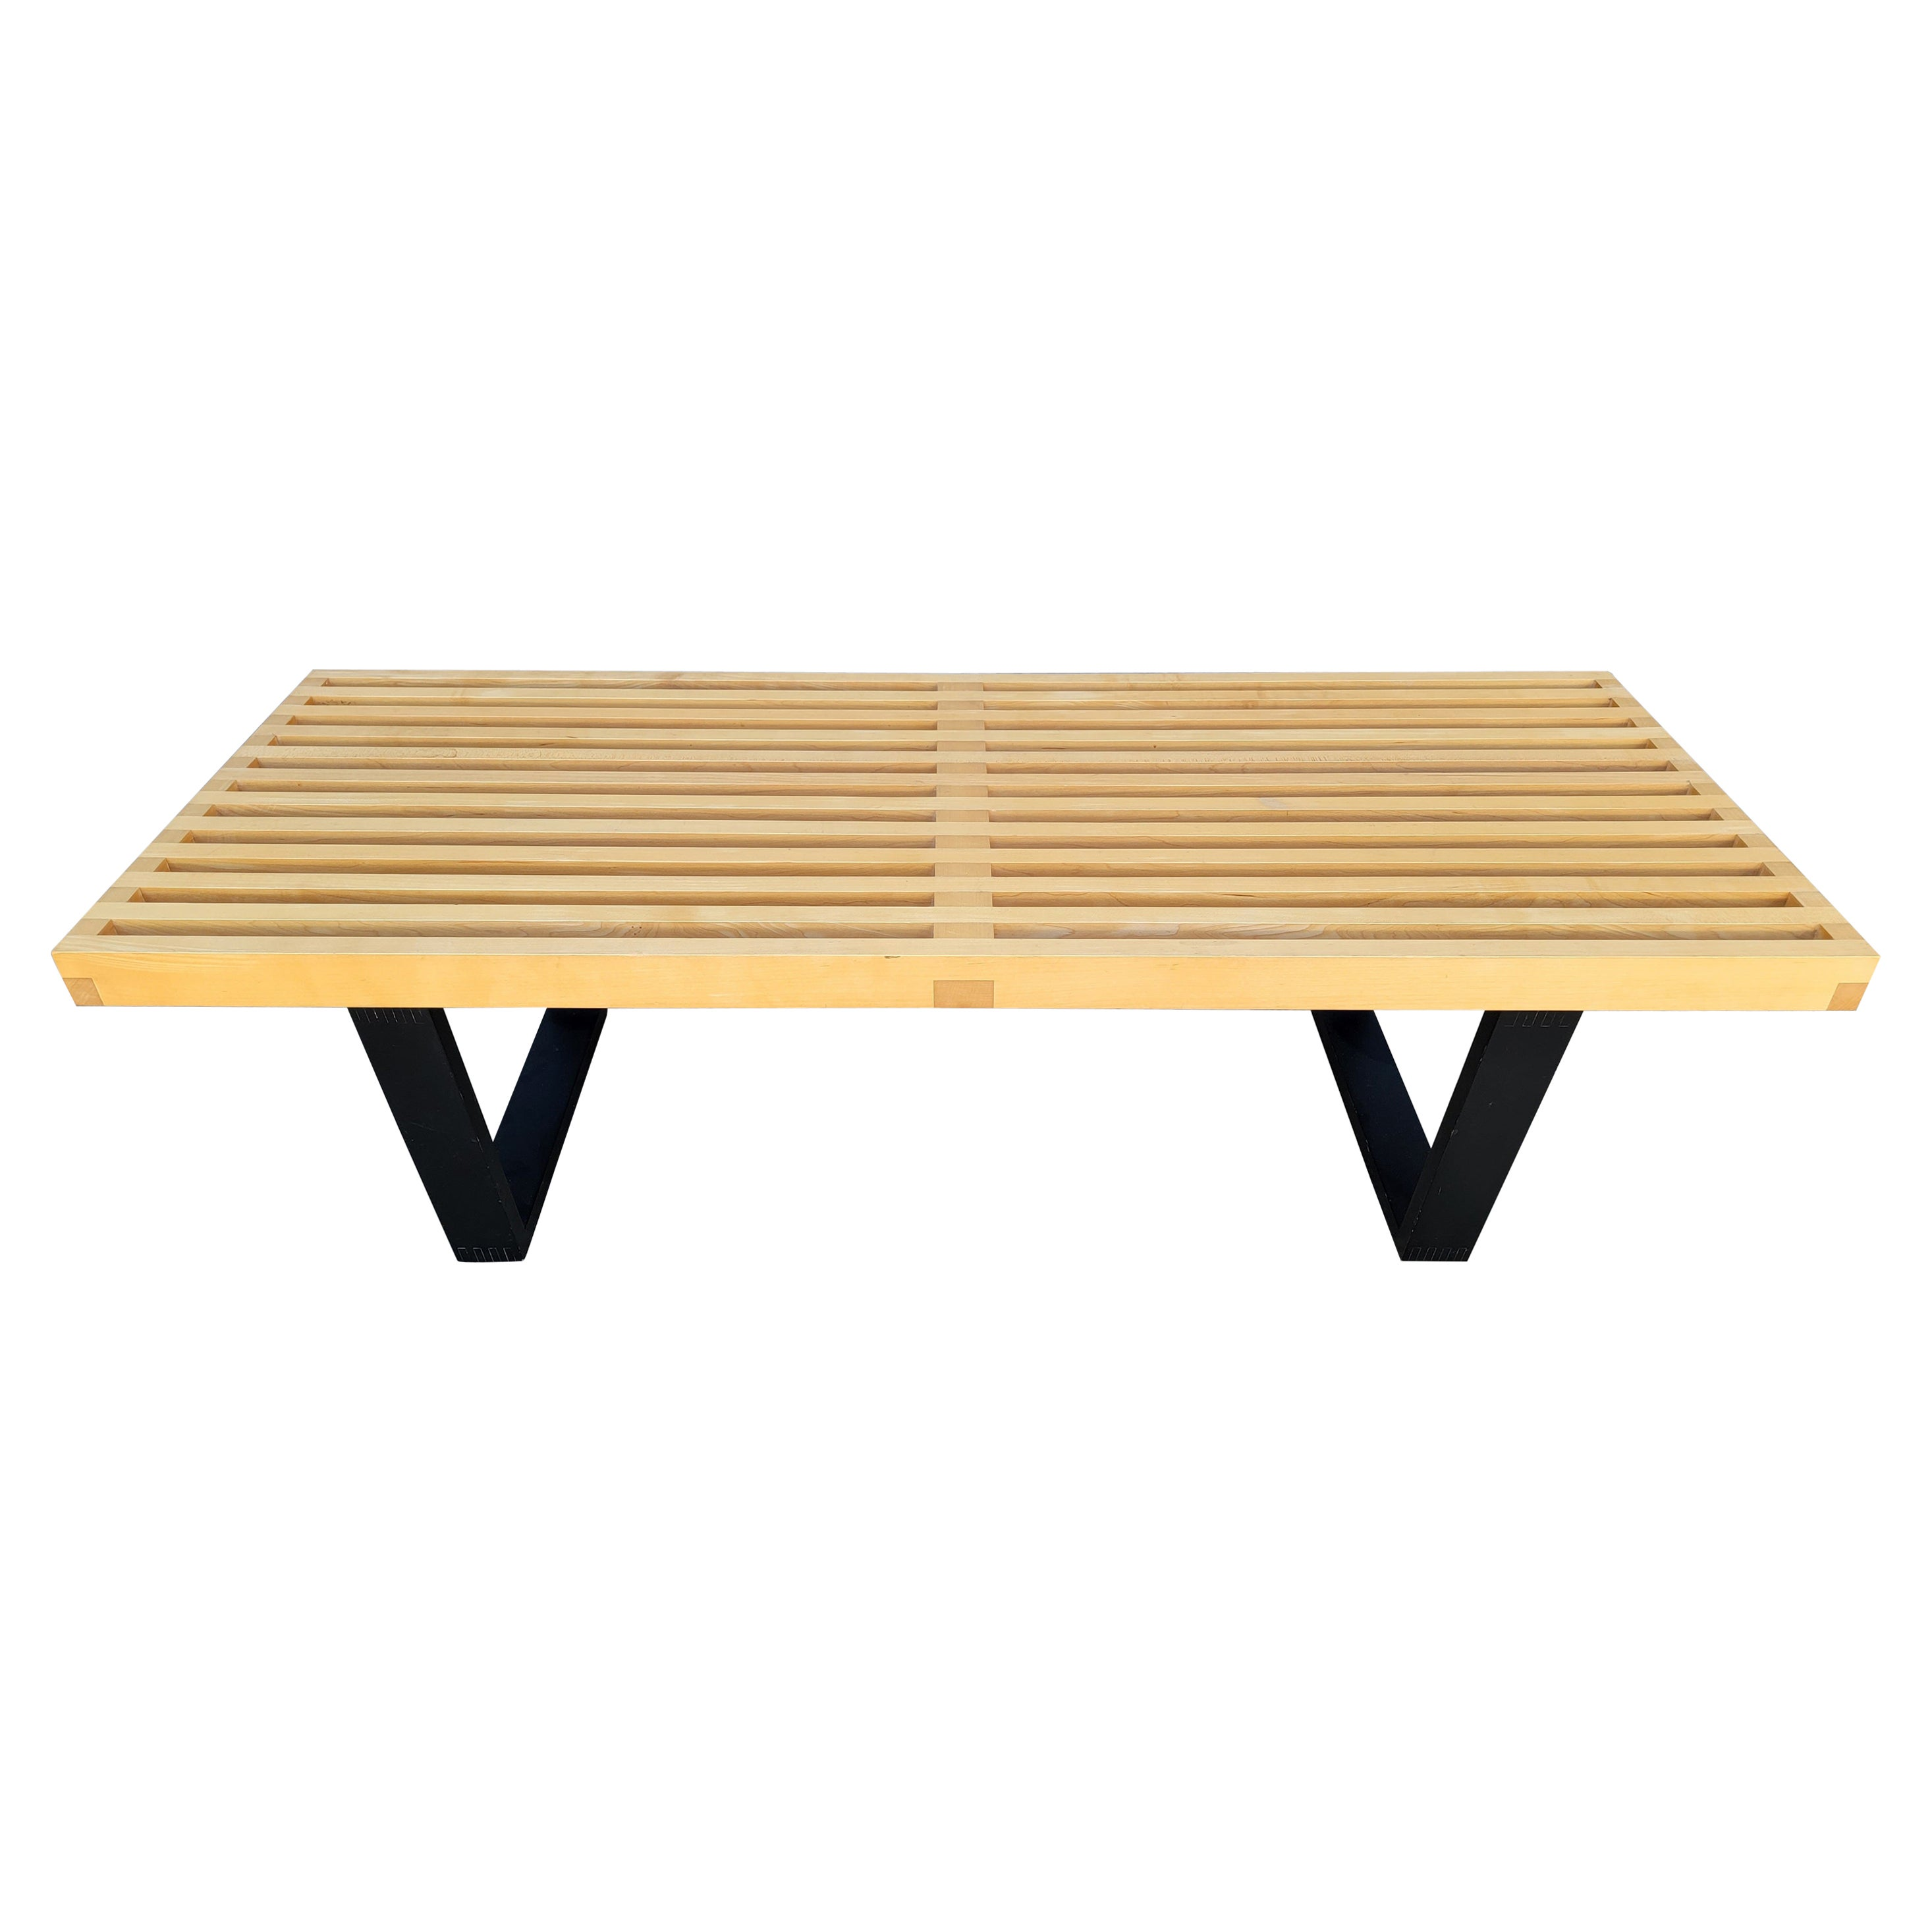 Platform Bench / Coffee Table by George Nelson for Herman Miller